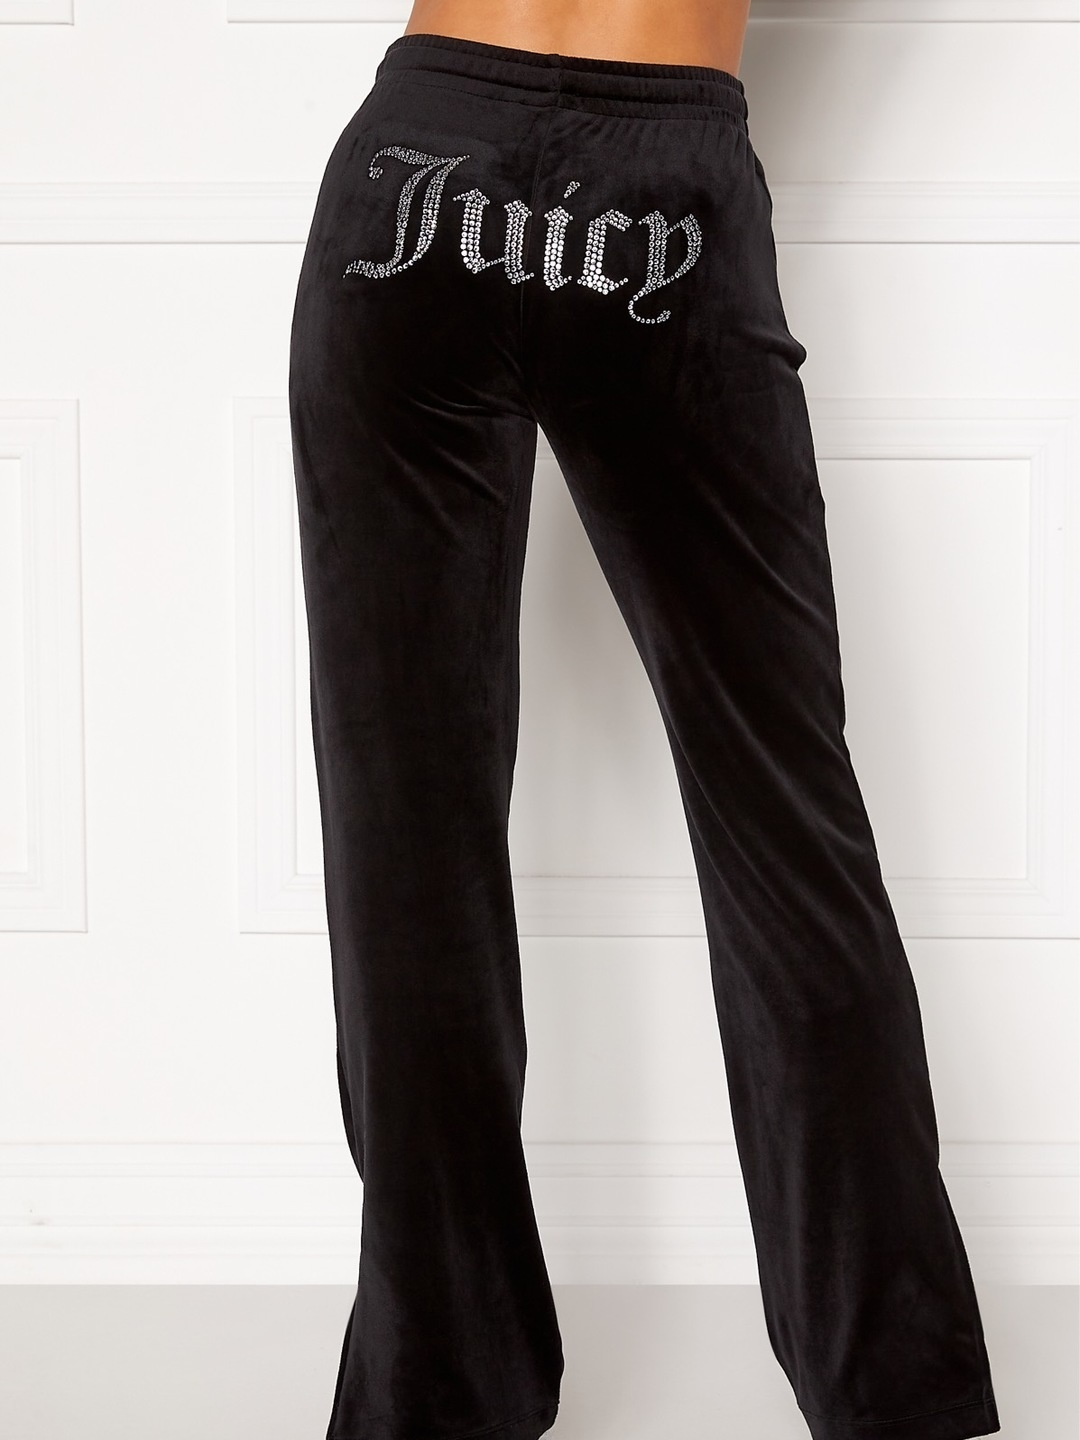 Women's trousers & jeans - JUICY COUTURE photo 1